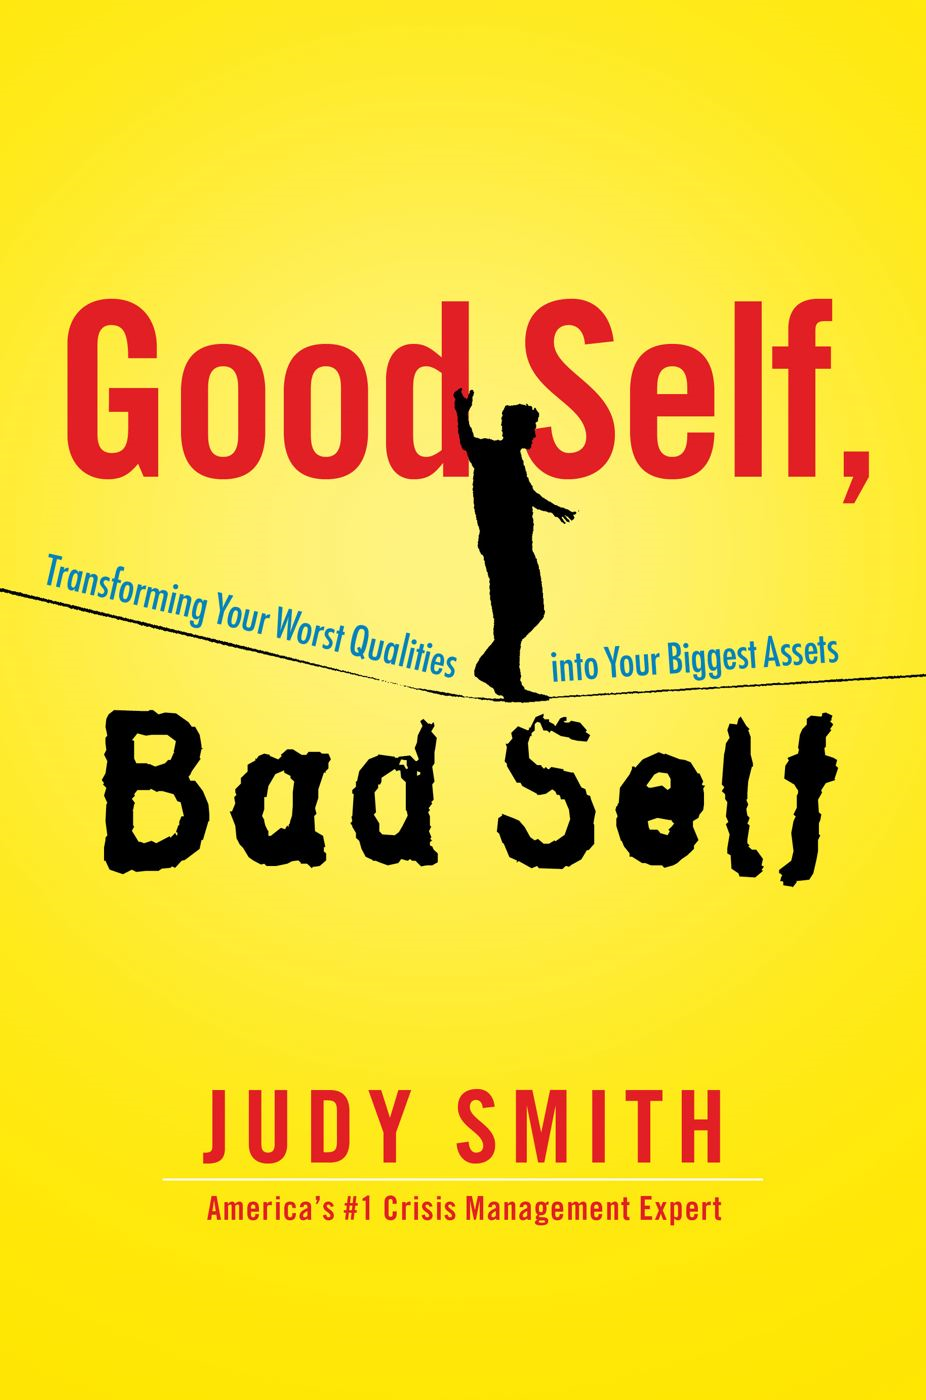 Good Self, Bad Self By: Judy Smith